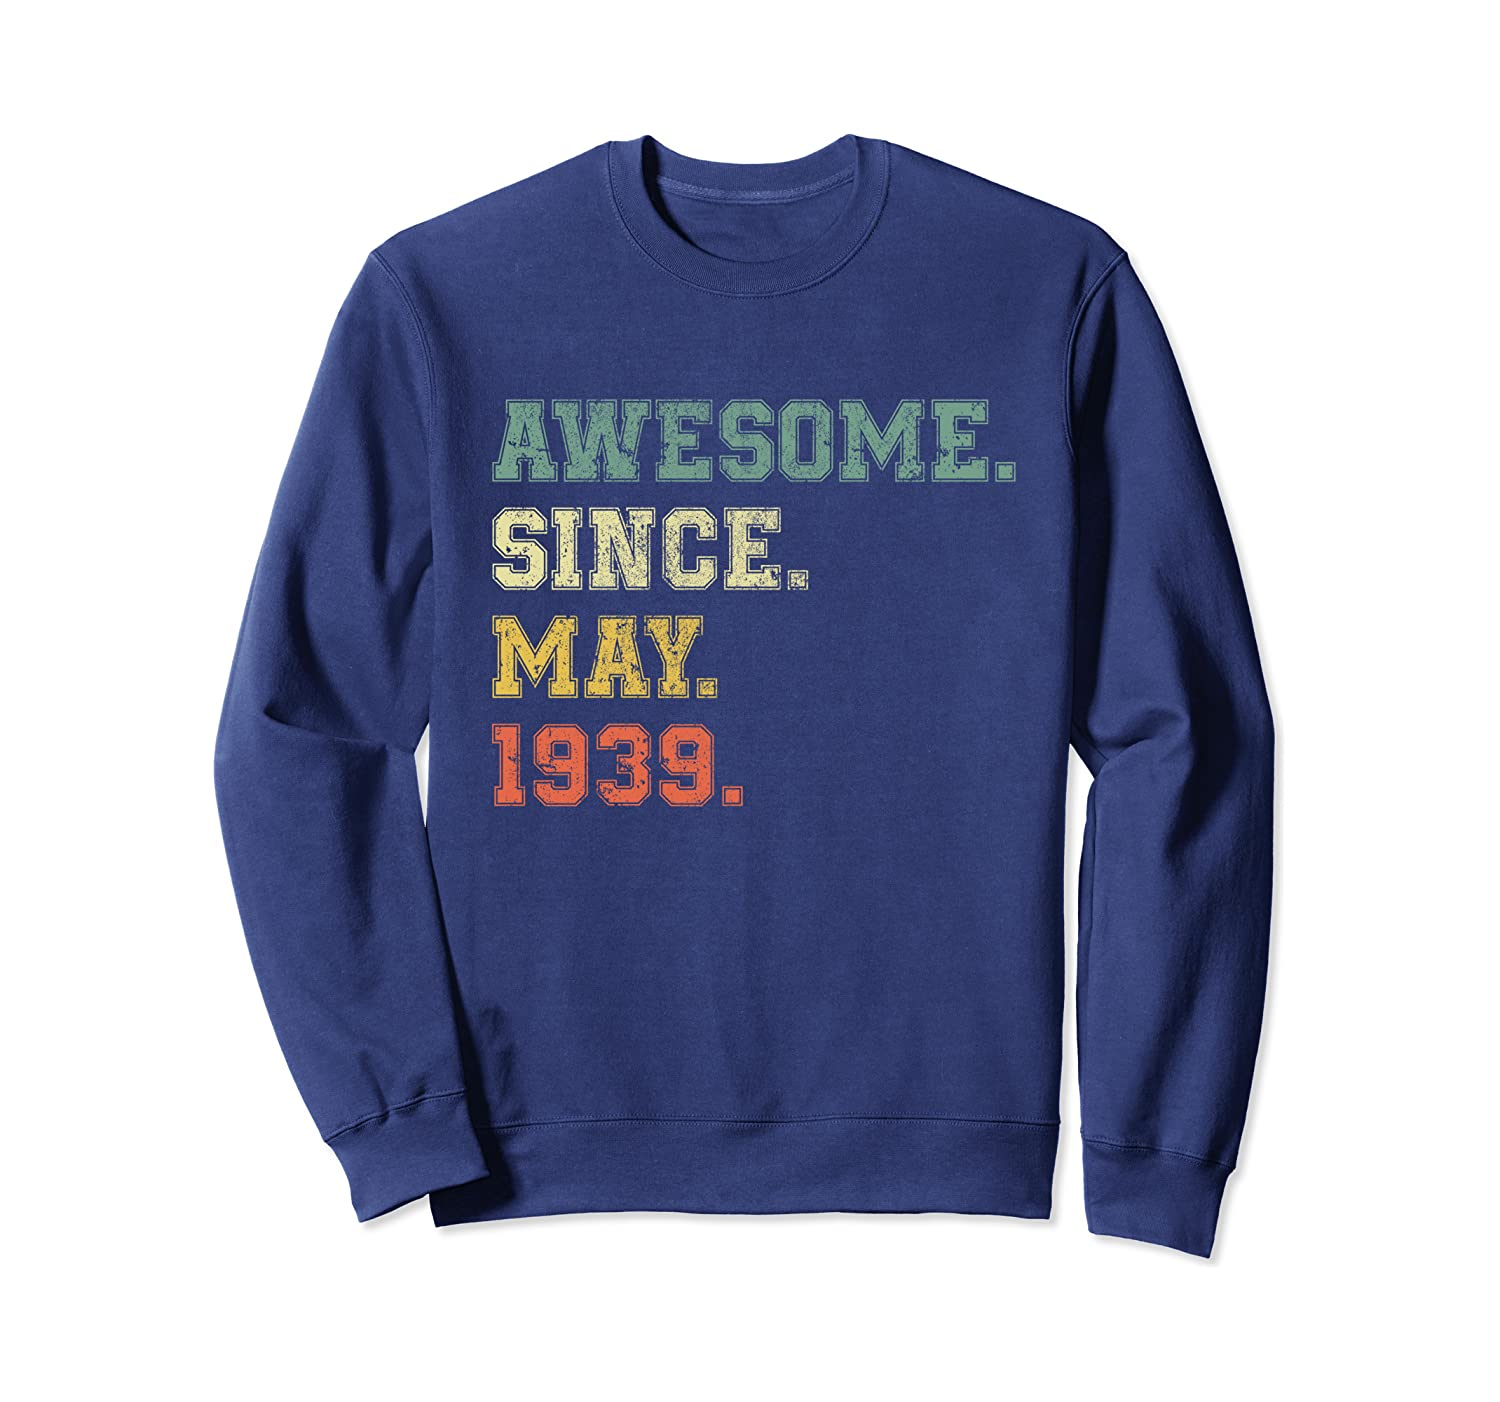 80th Birthday Gift Vintage Retro May 1939 Gift for Him Her Sweatshirt